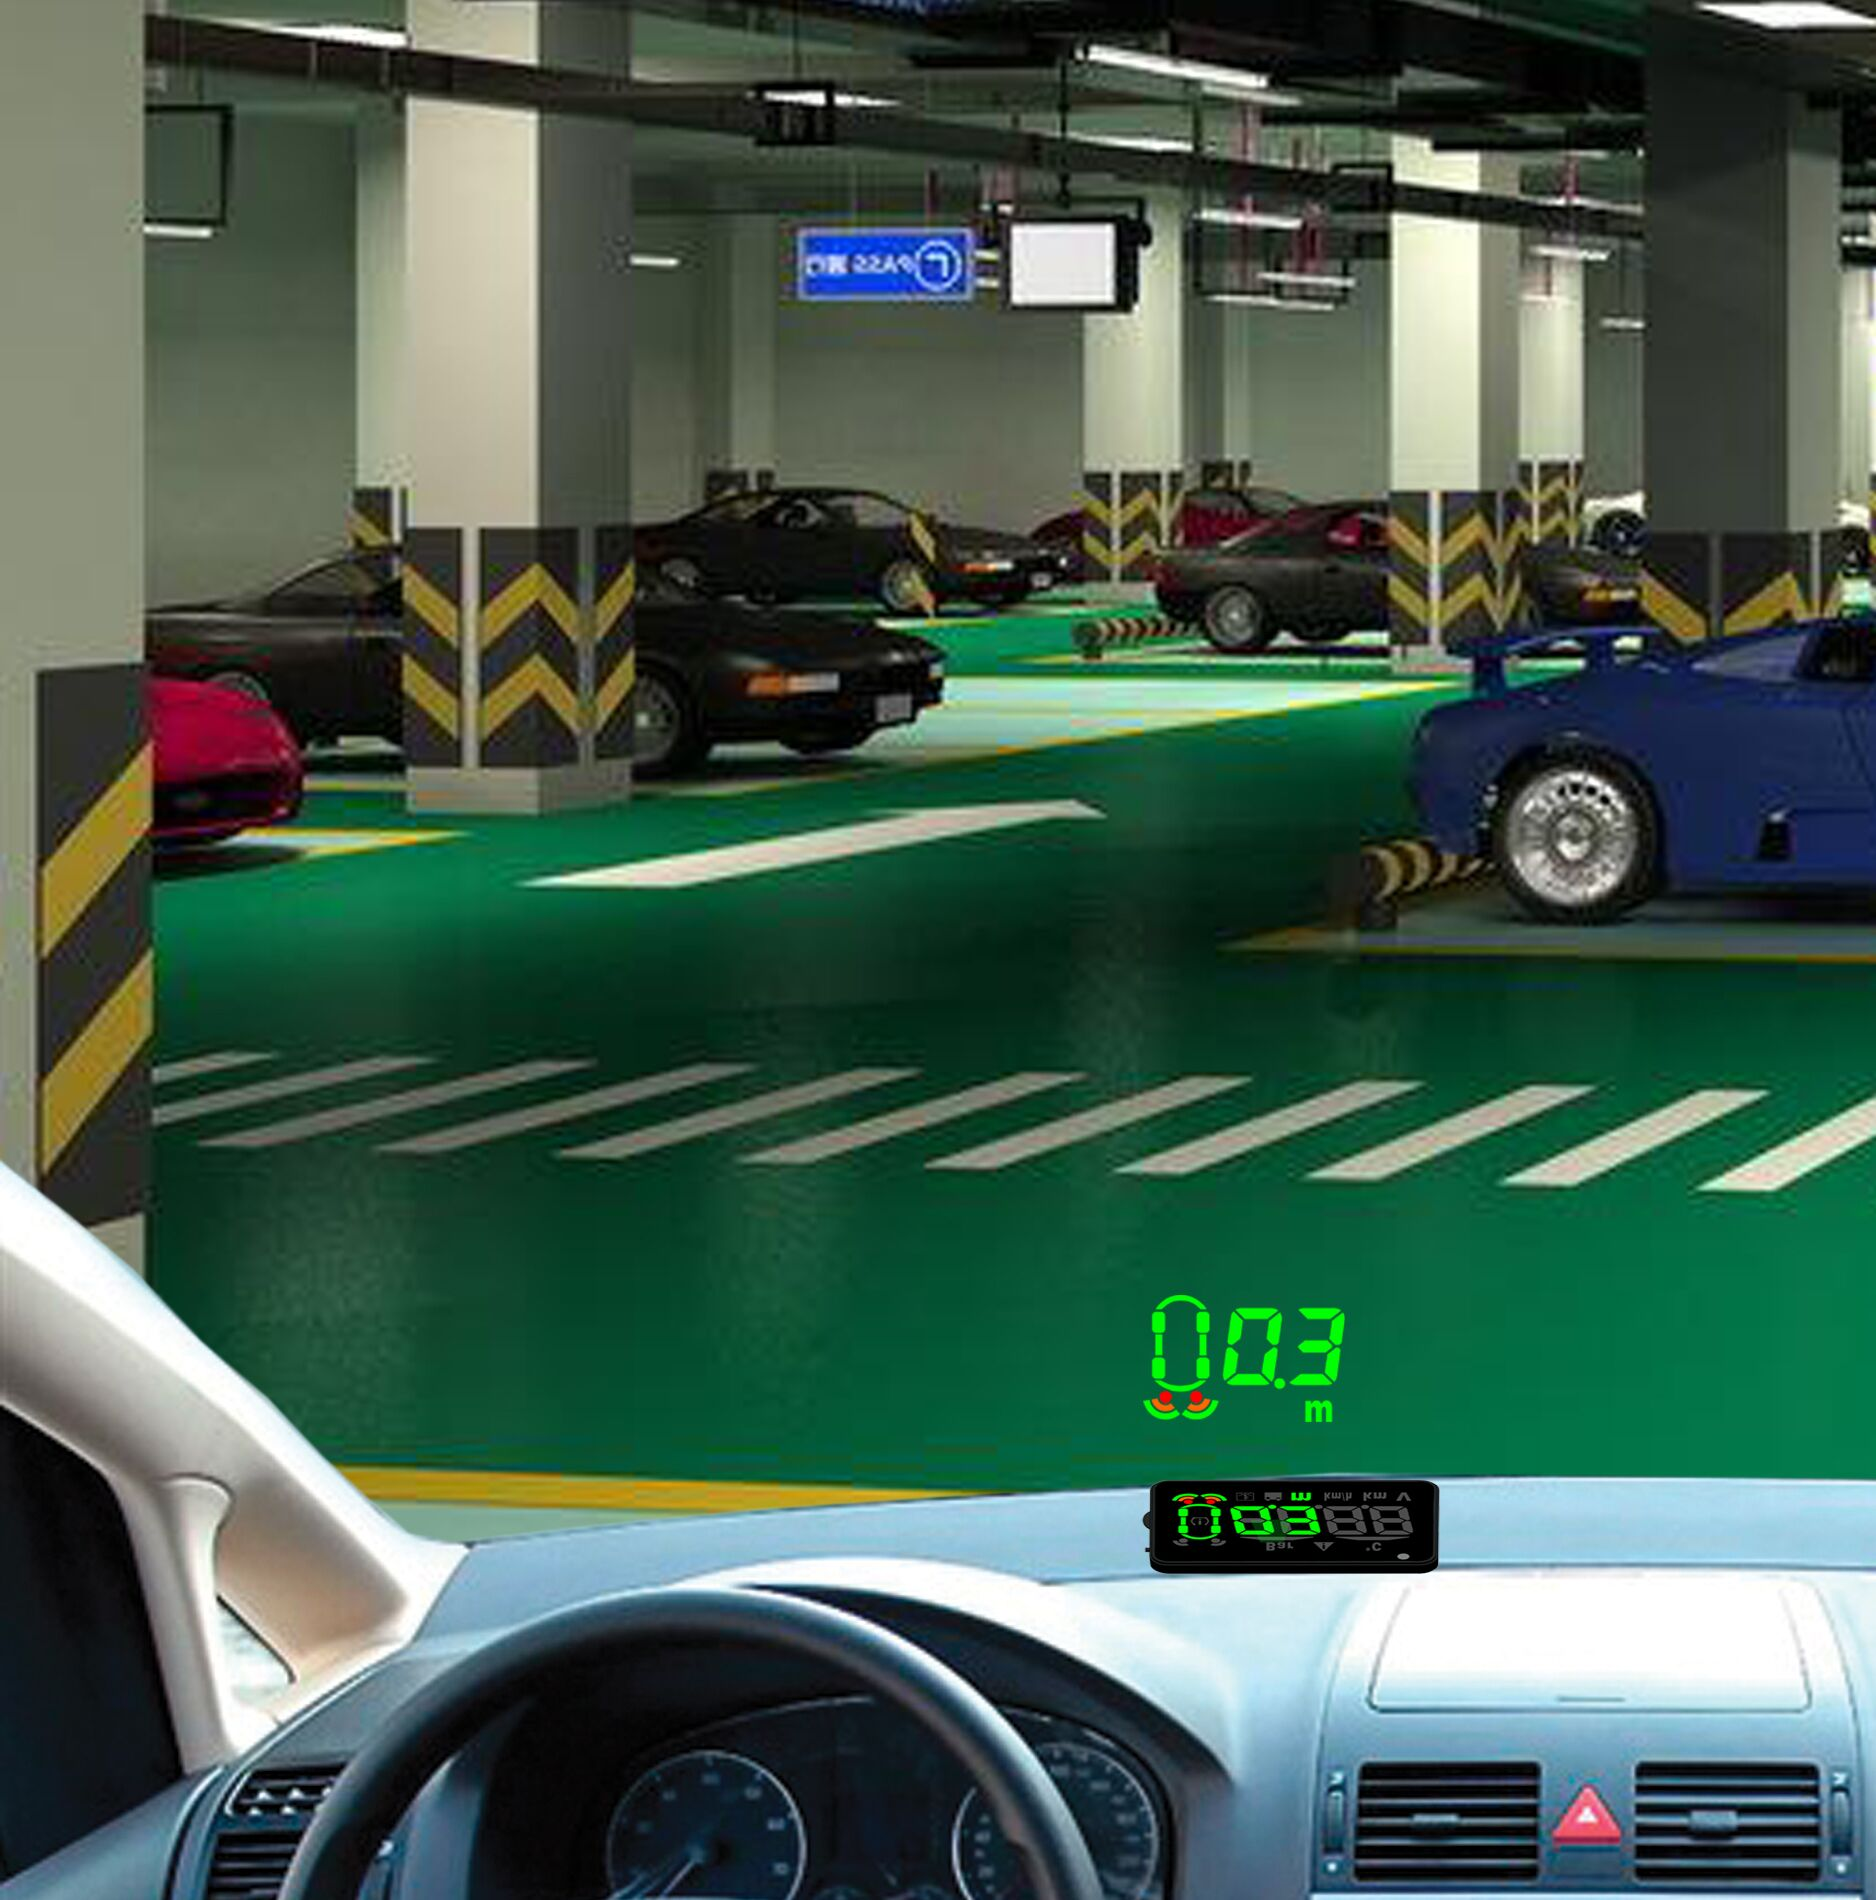 OBD-II Head-up Display with 4 rear+ 4 front wireless parking sensor